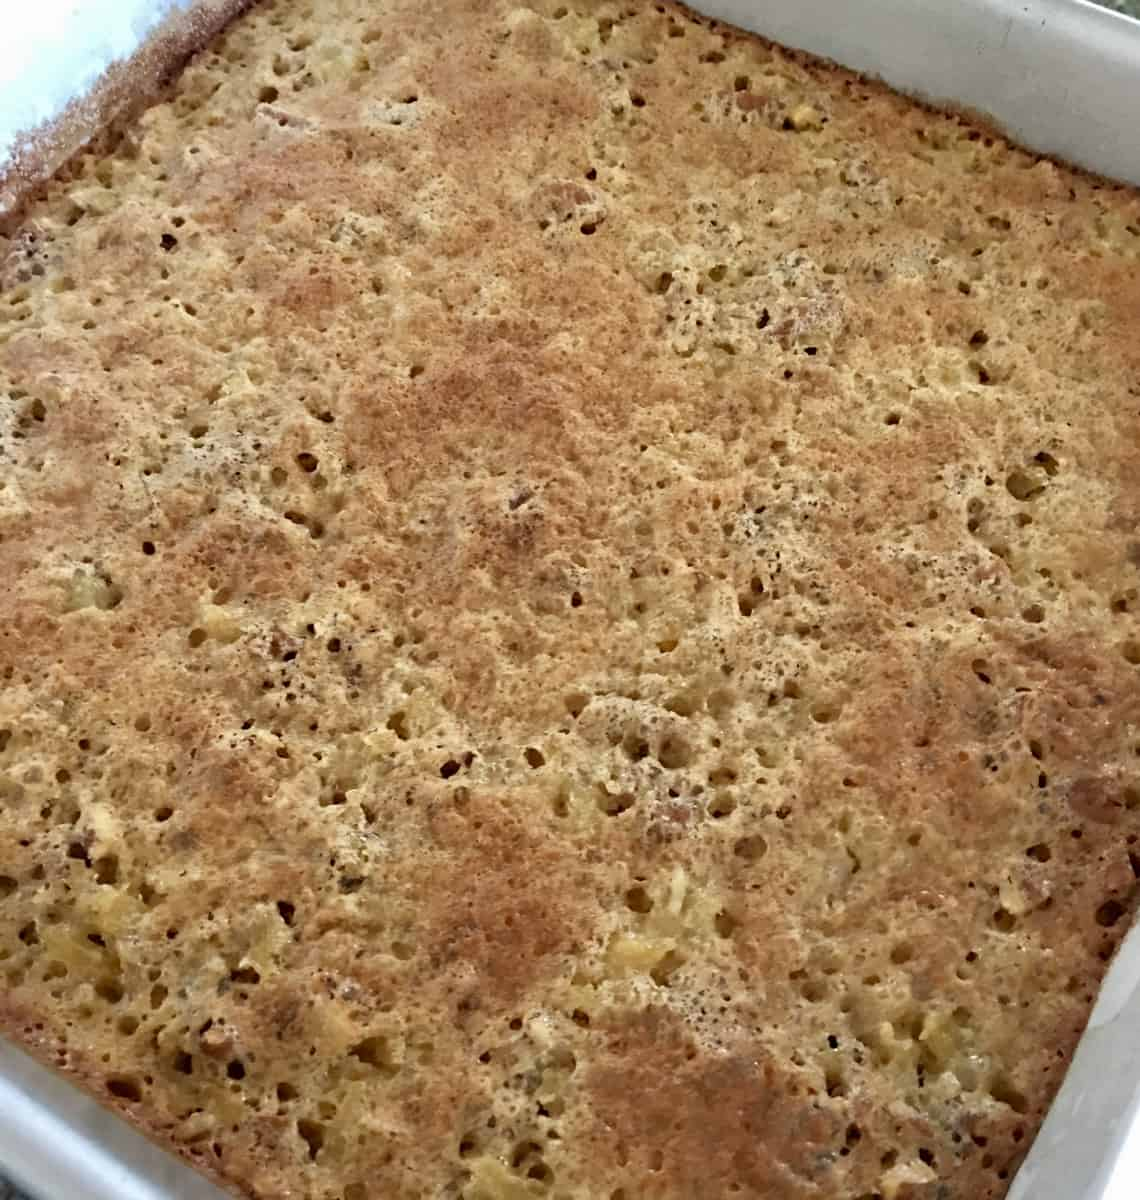 top layer baked on the squares.